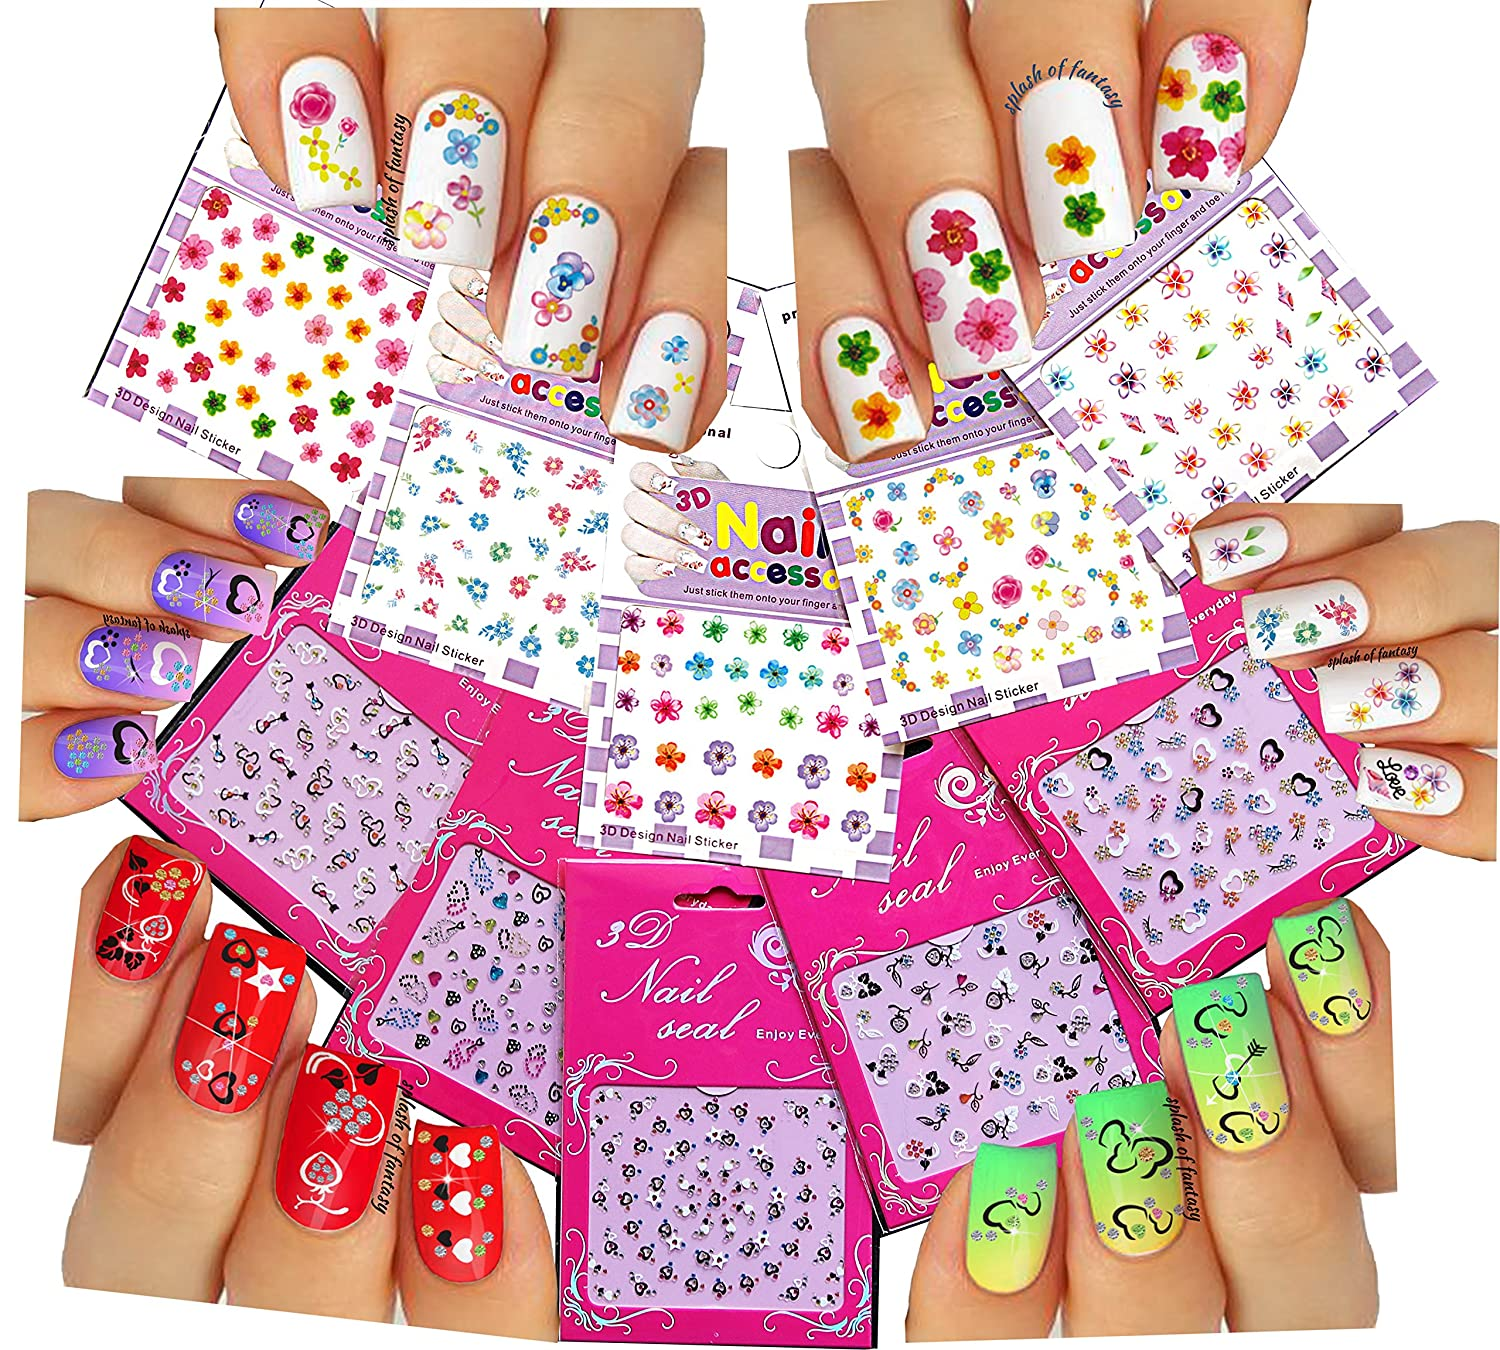 Cute & Adorable Nail Art 3D Stickers ♥ With Rhinestones Hearts / Flowers Collection of 10 Decals /EEX-I/ La Demoiselle